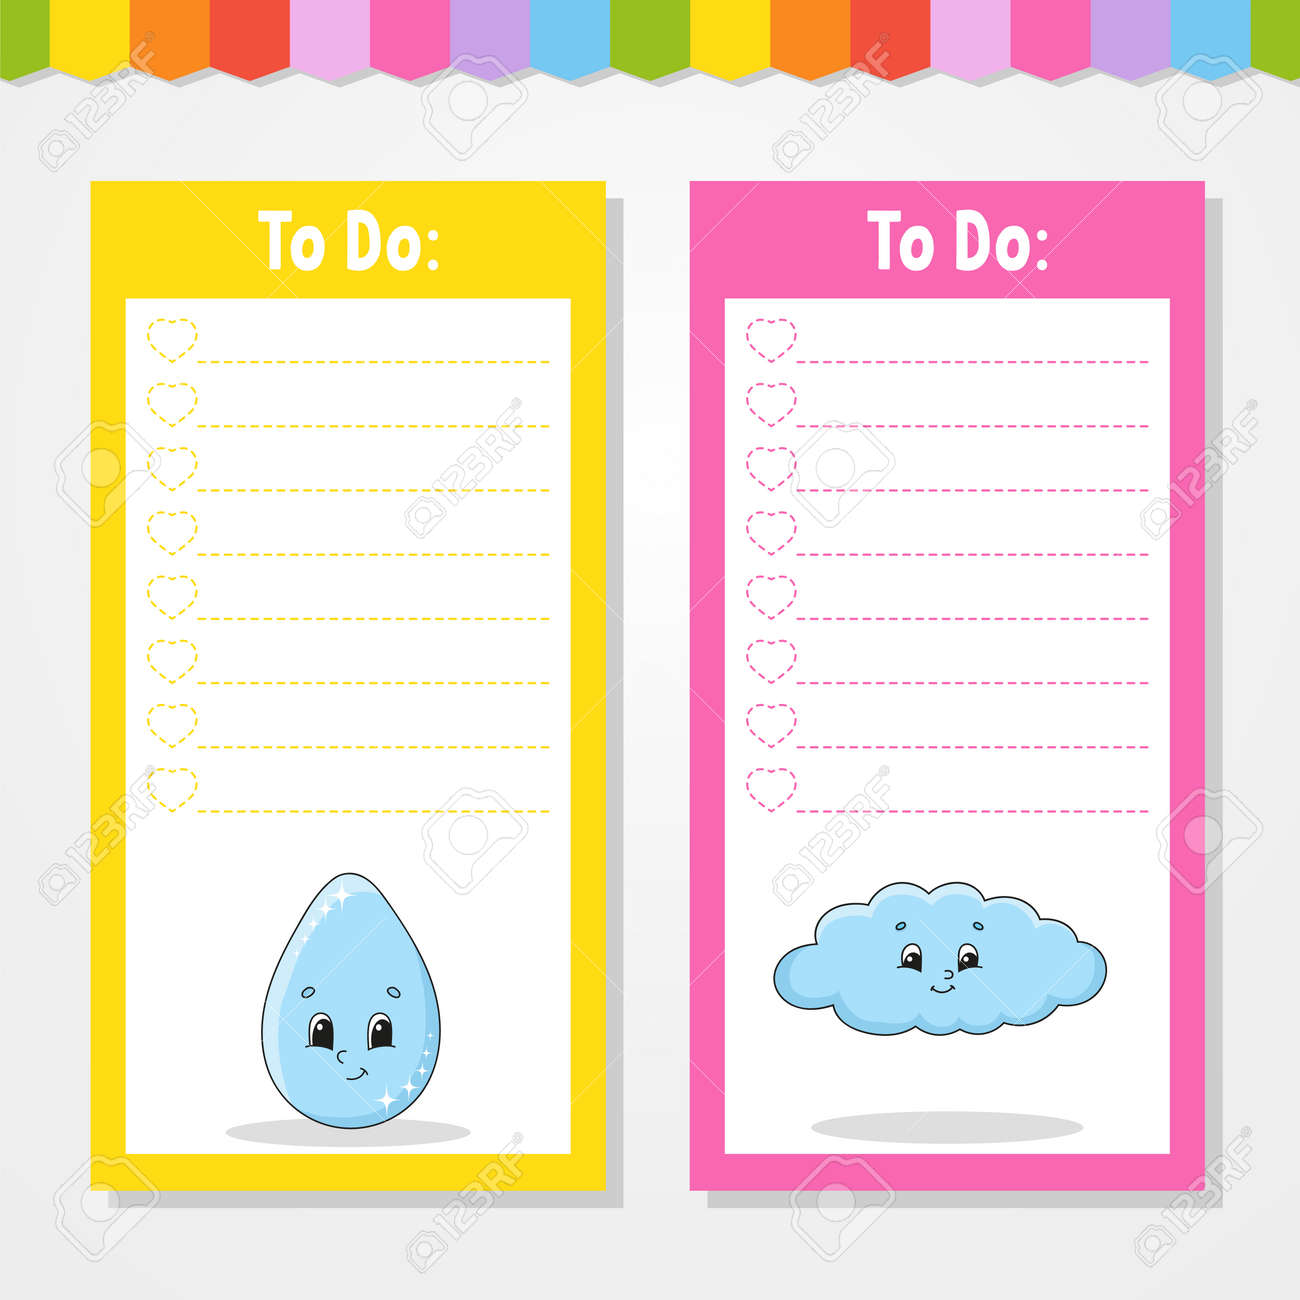 To do list for kids. Empty template. Drop and cloud. The rectangular shape. Isolated color vector illustration. Funny character. Cartoon style. For the diary, notebook, bookmark. - 169599720